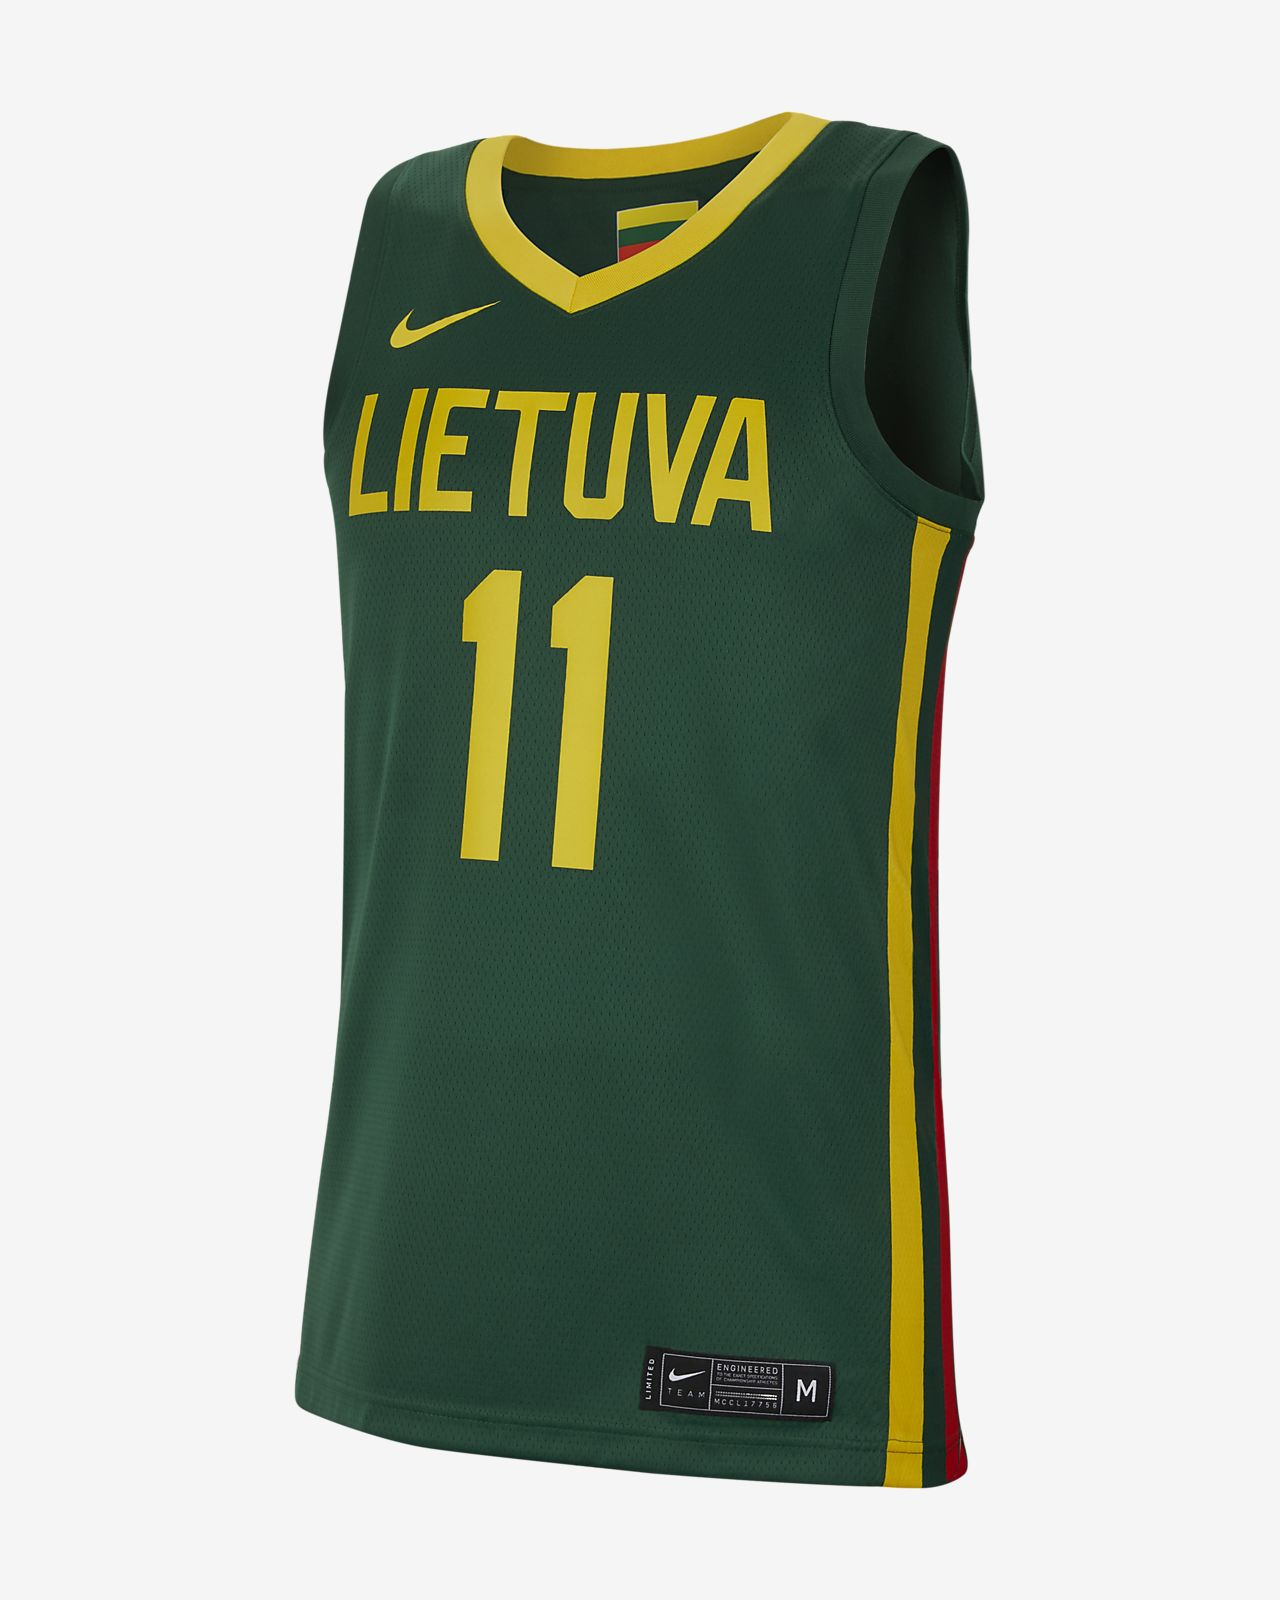 Lithuania Nike (Road) Basketbaljersey voor heren